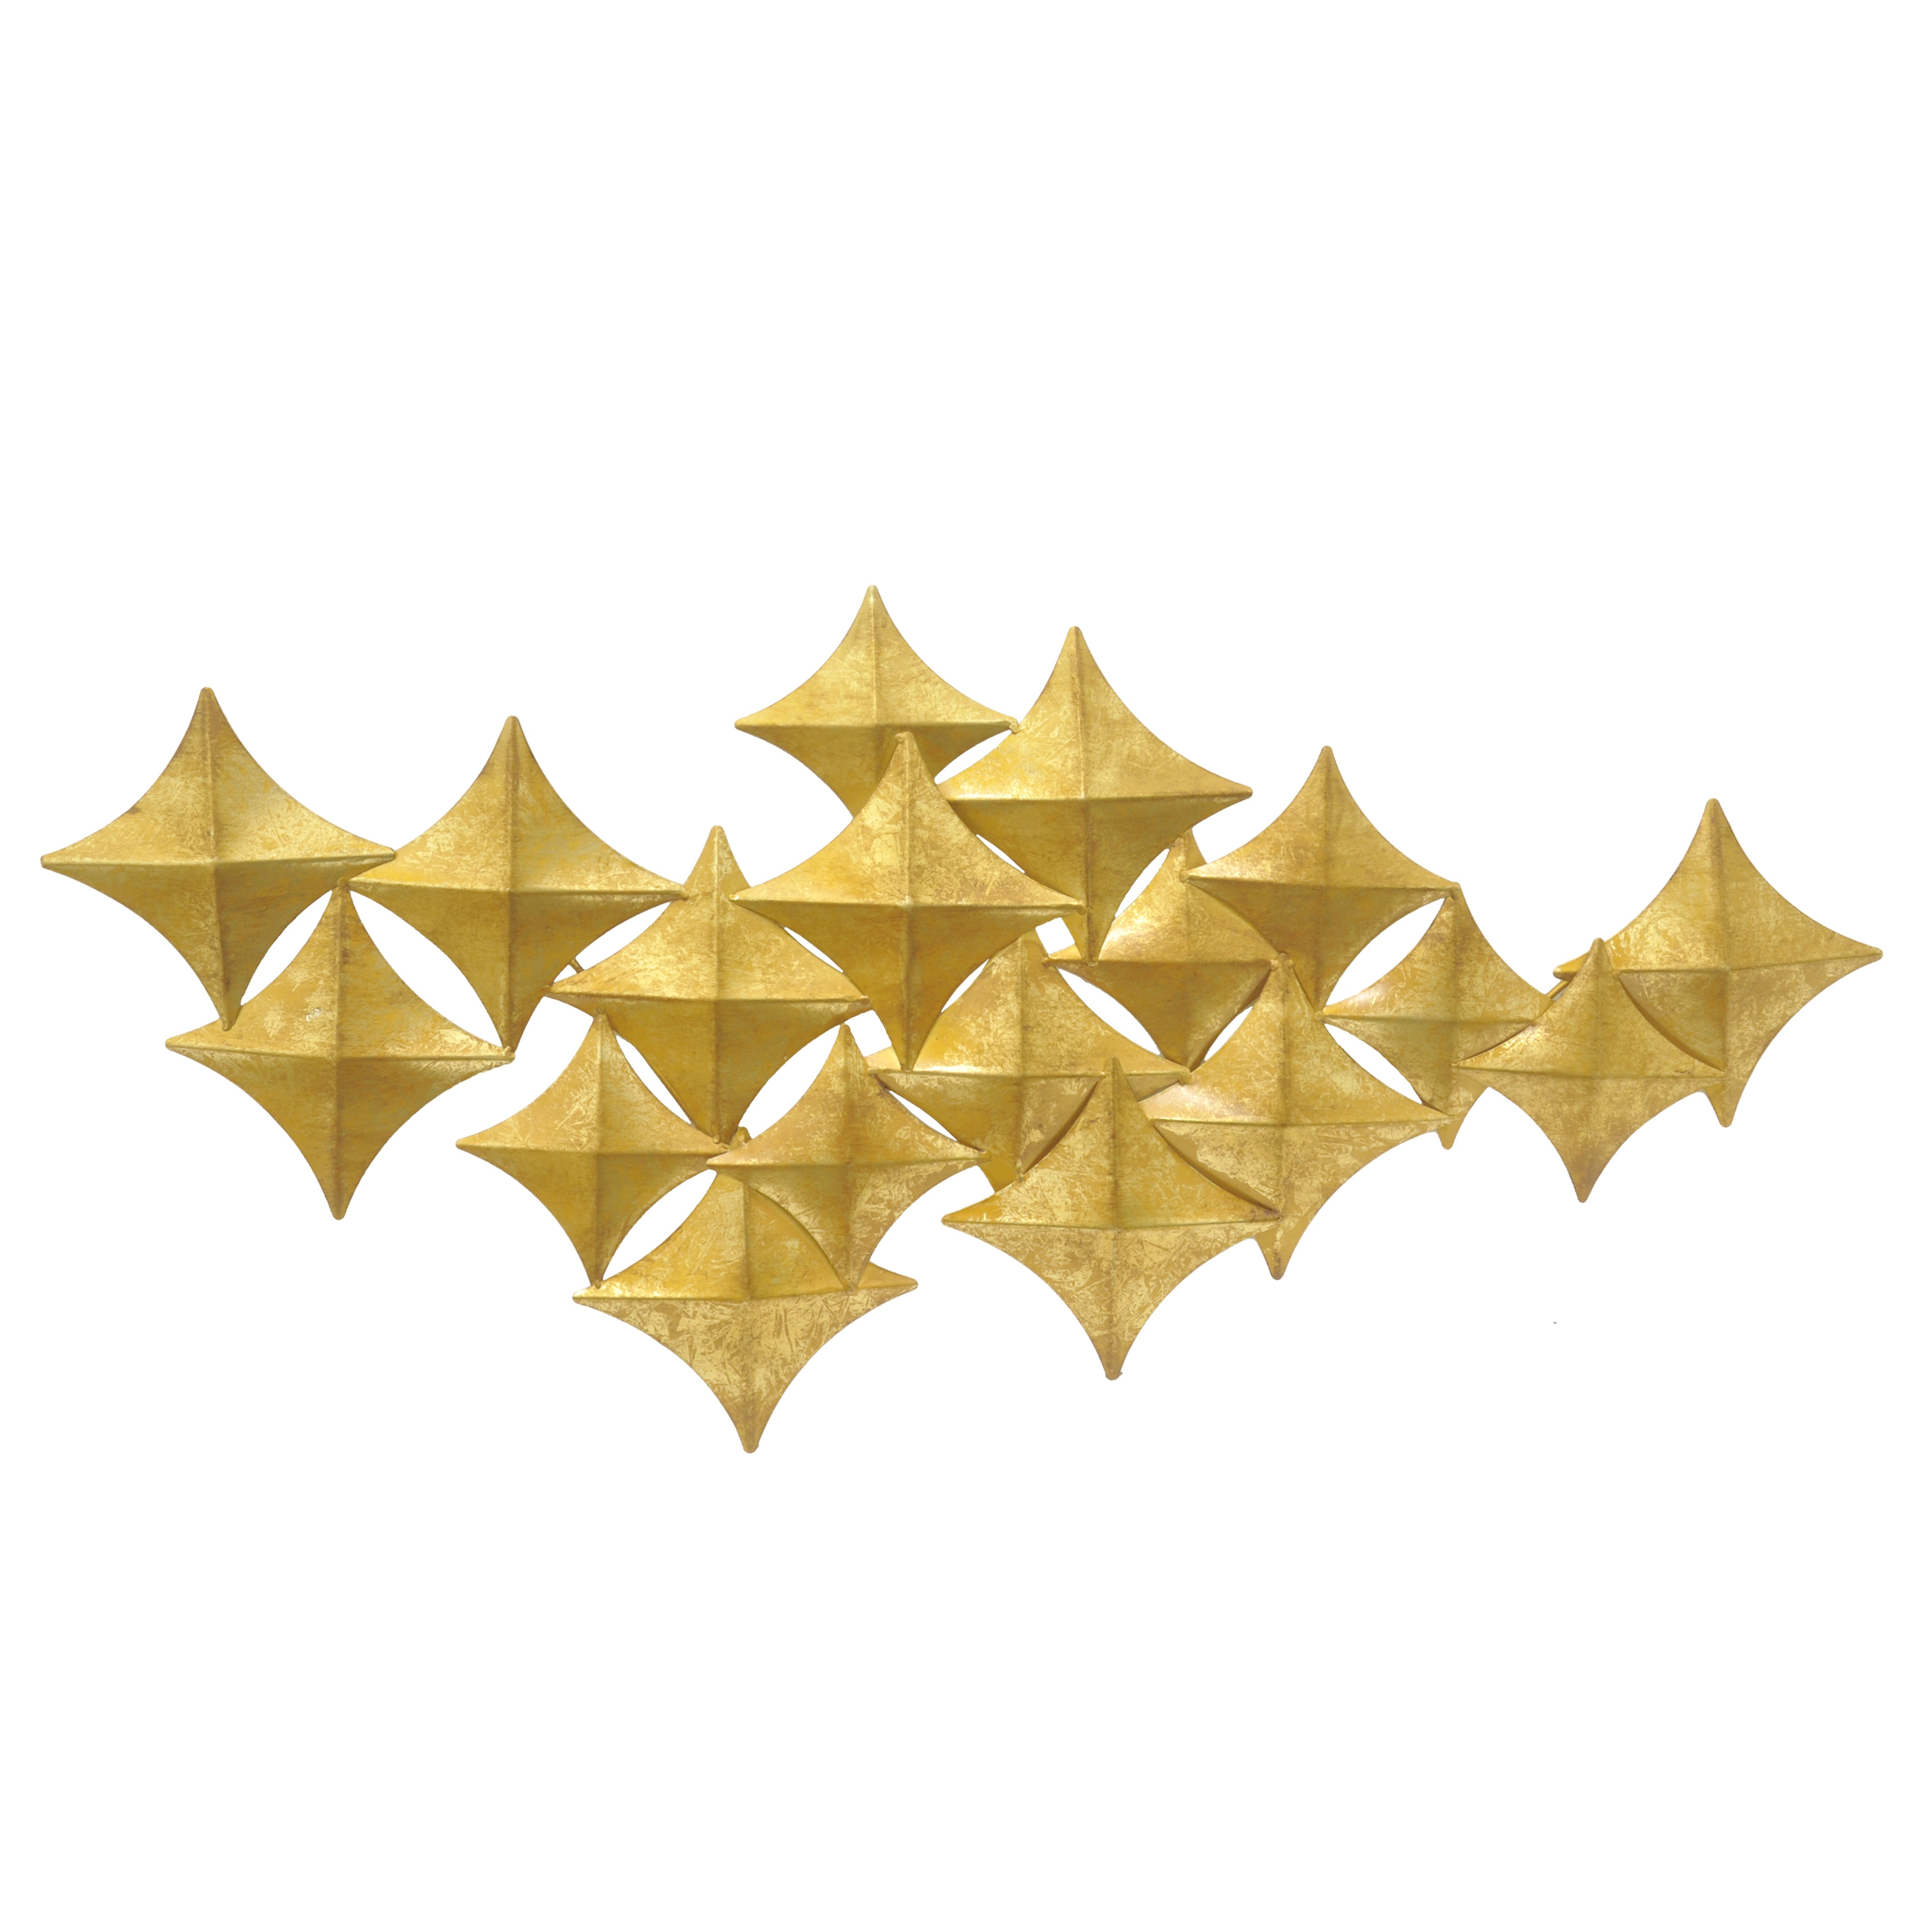 Three Hands Gold Metal Diamond Wall Decoration - Free Shipping Today ...